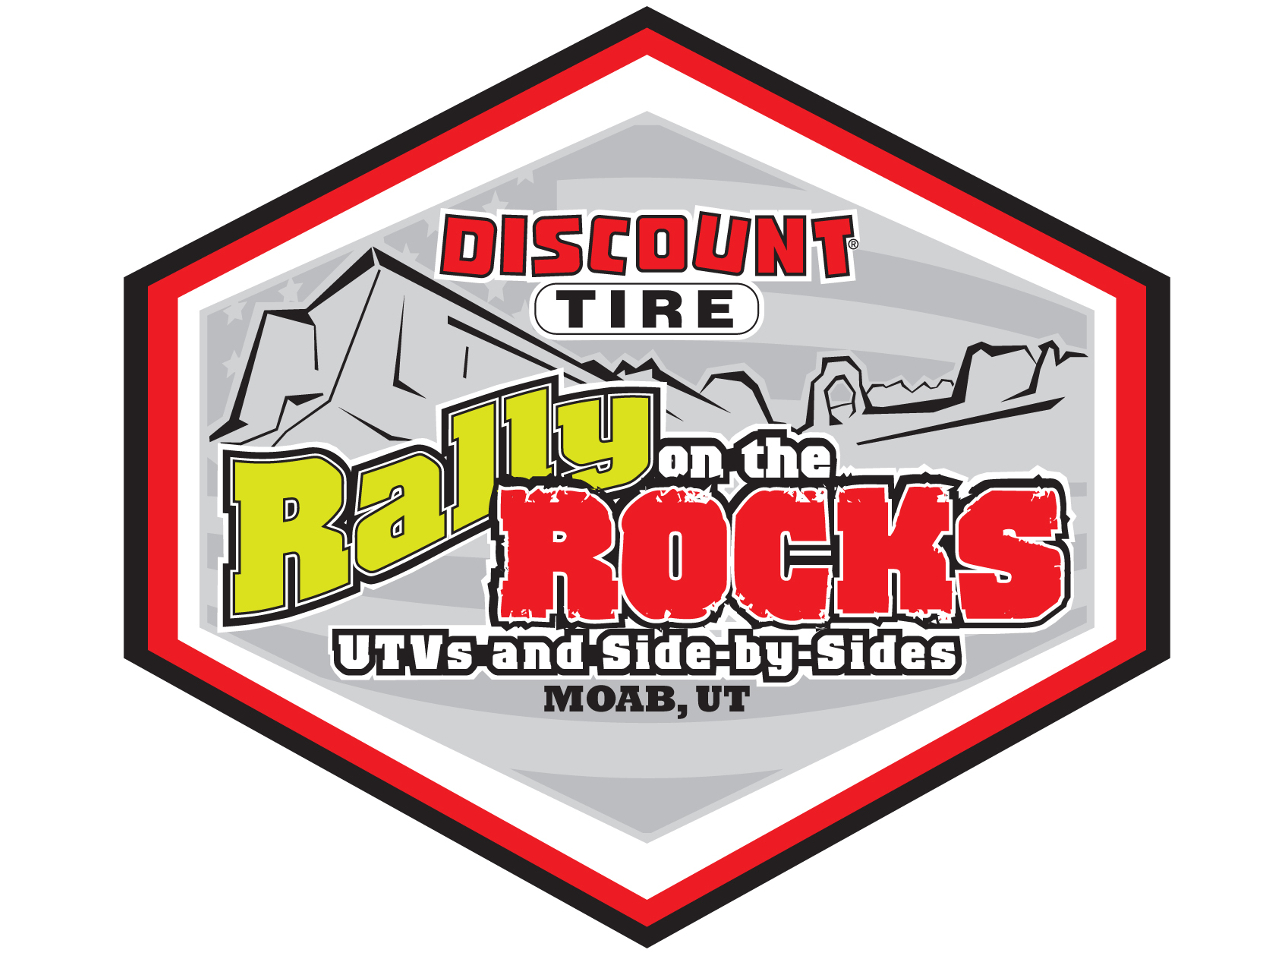 Discount tire logo clipart svg library download Discount Tire Rally on the Rocks 2015 | ATV Illustrated svg library download